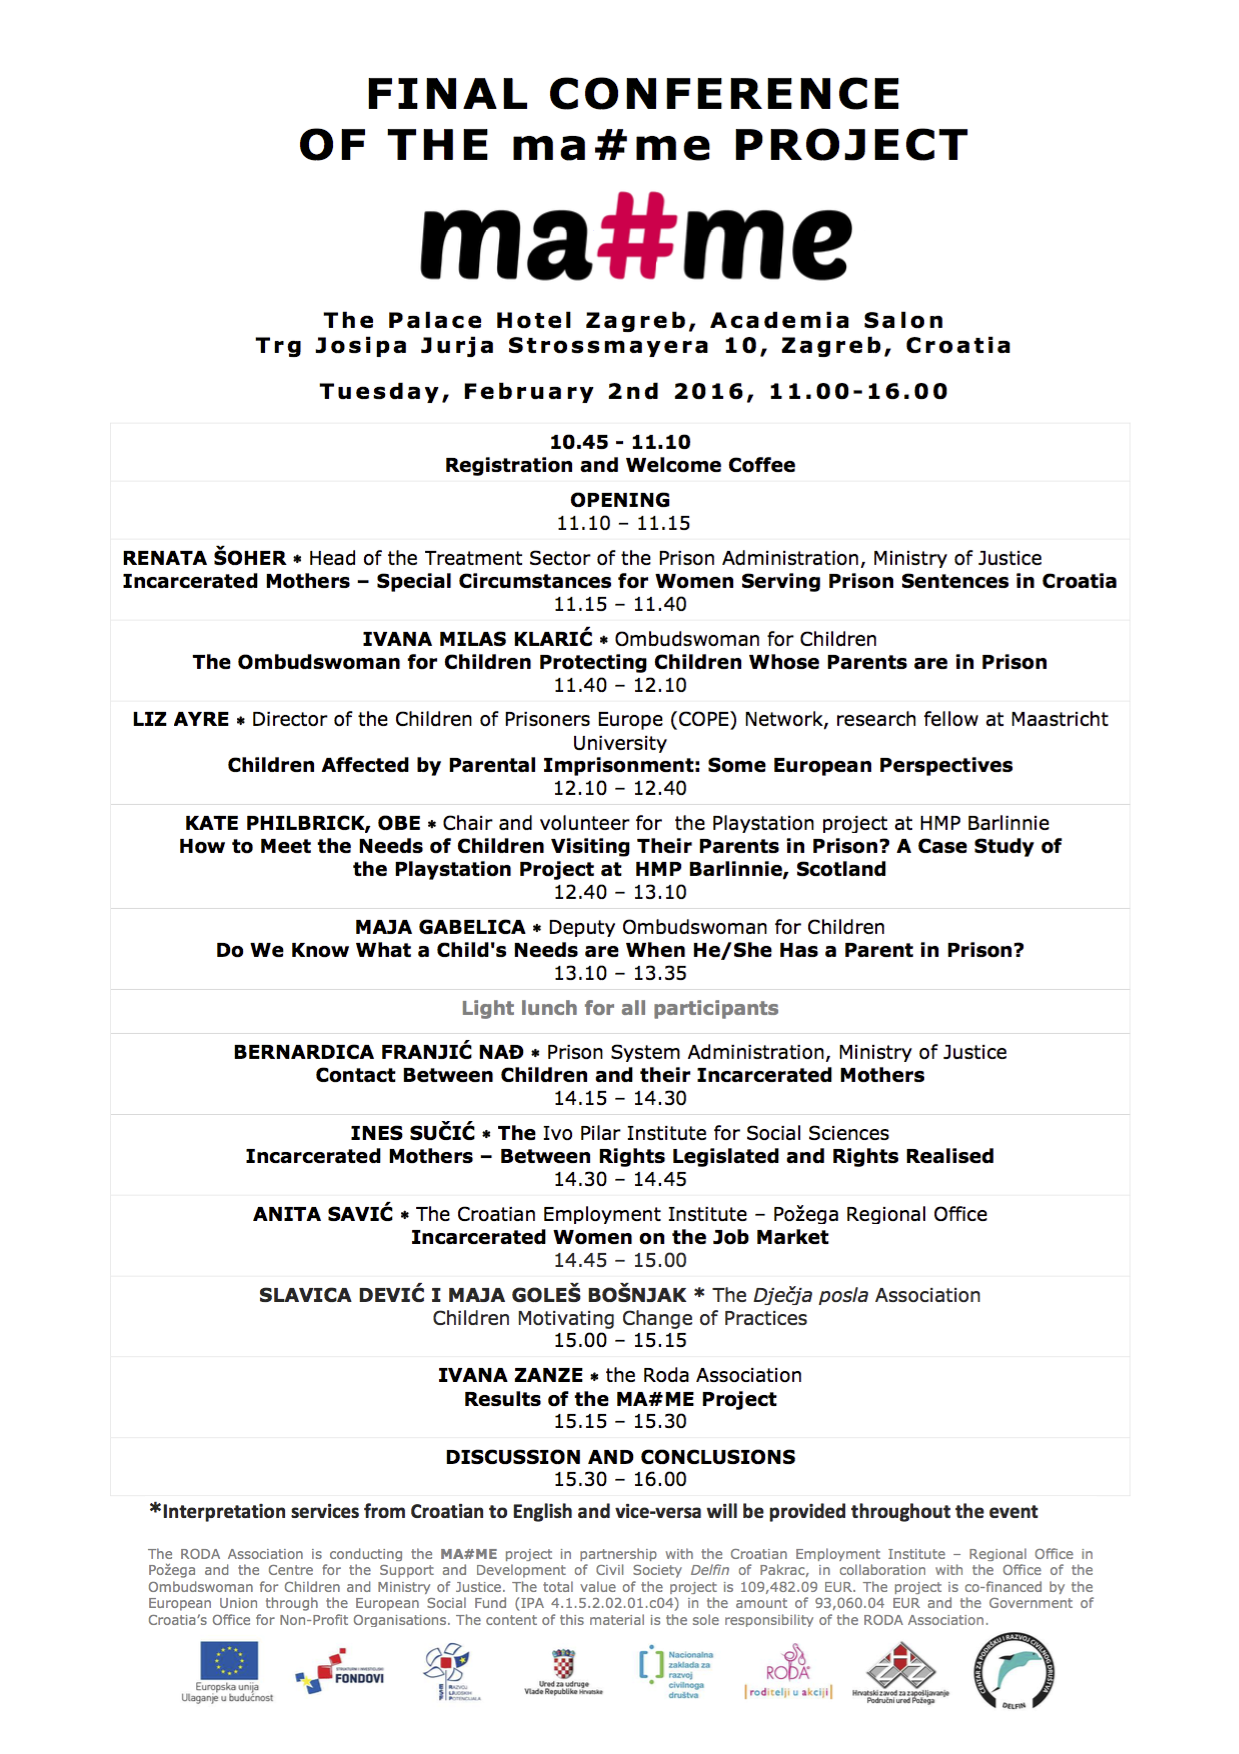 Final Conference of the MA#ME Project, Zagreb, Croatia, 2 February